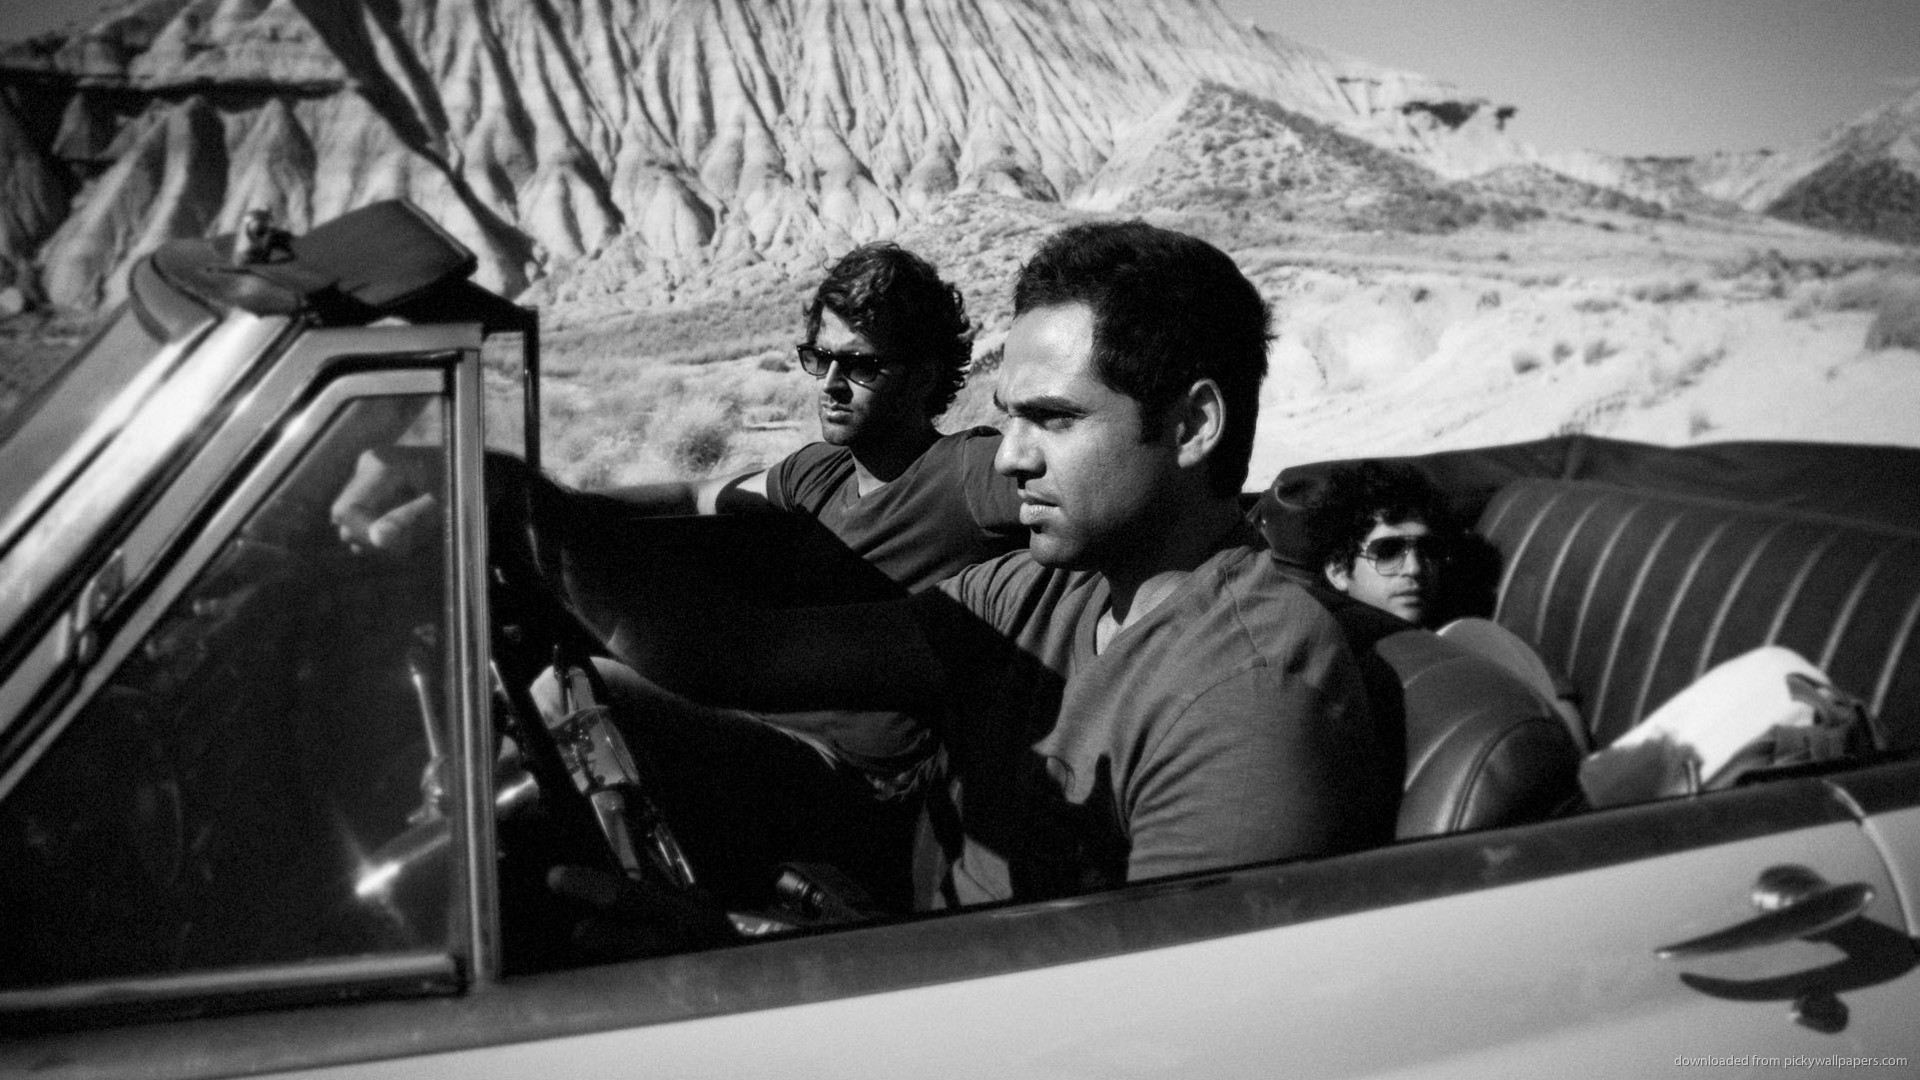 1920x1080 Abhay Deol road trip black and white for